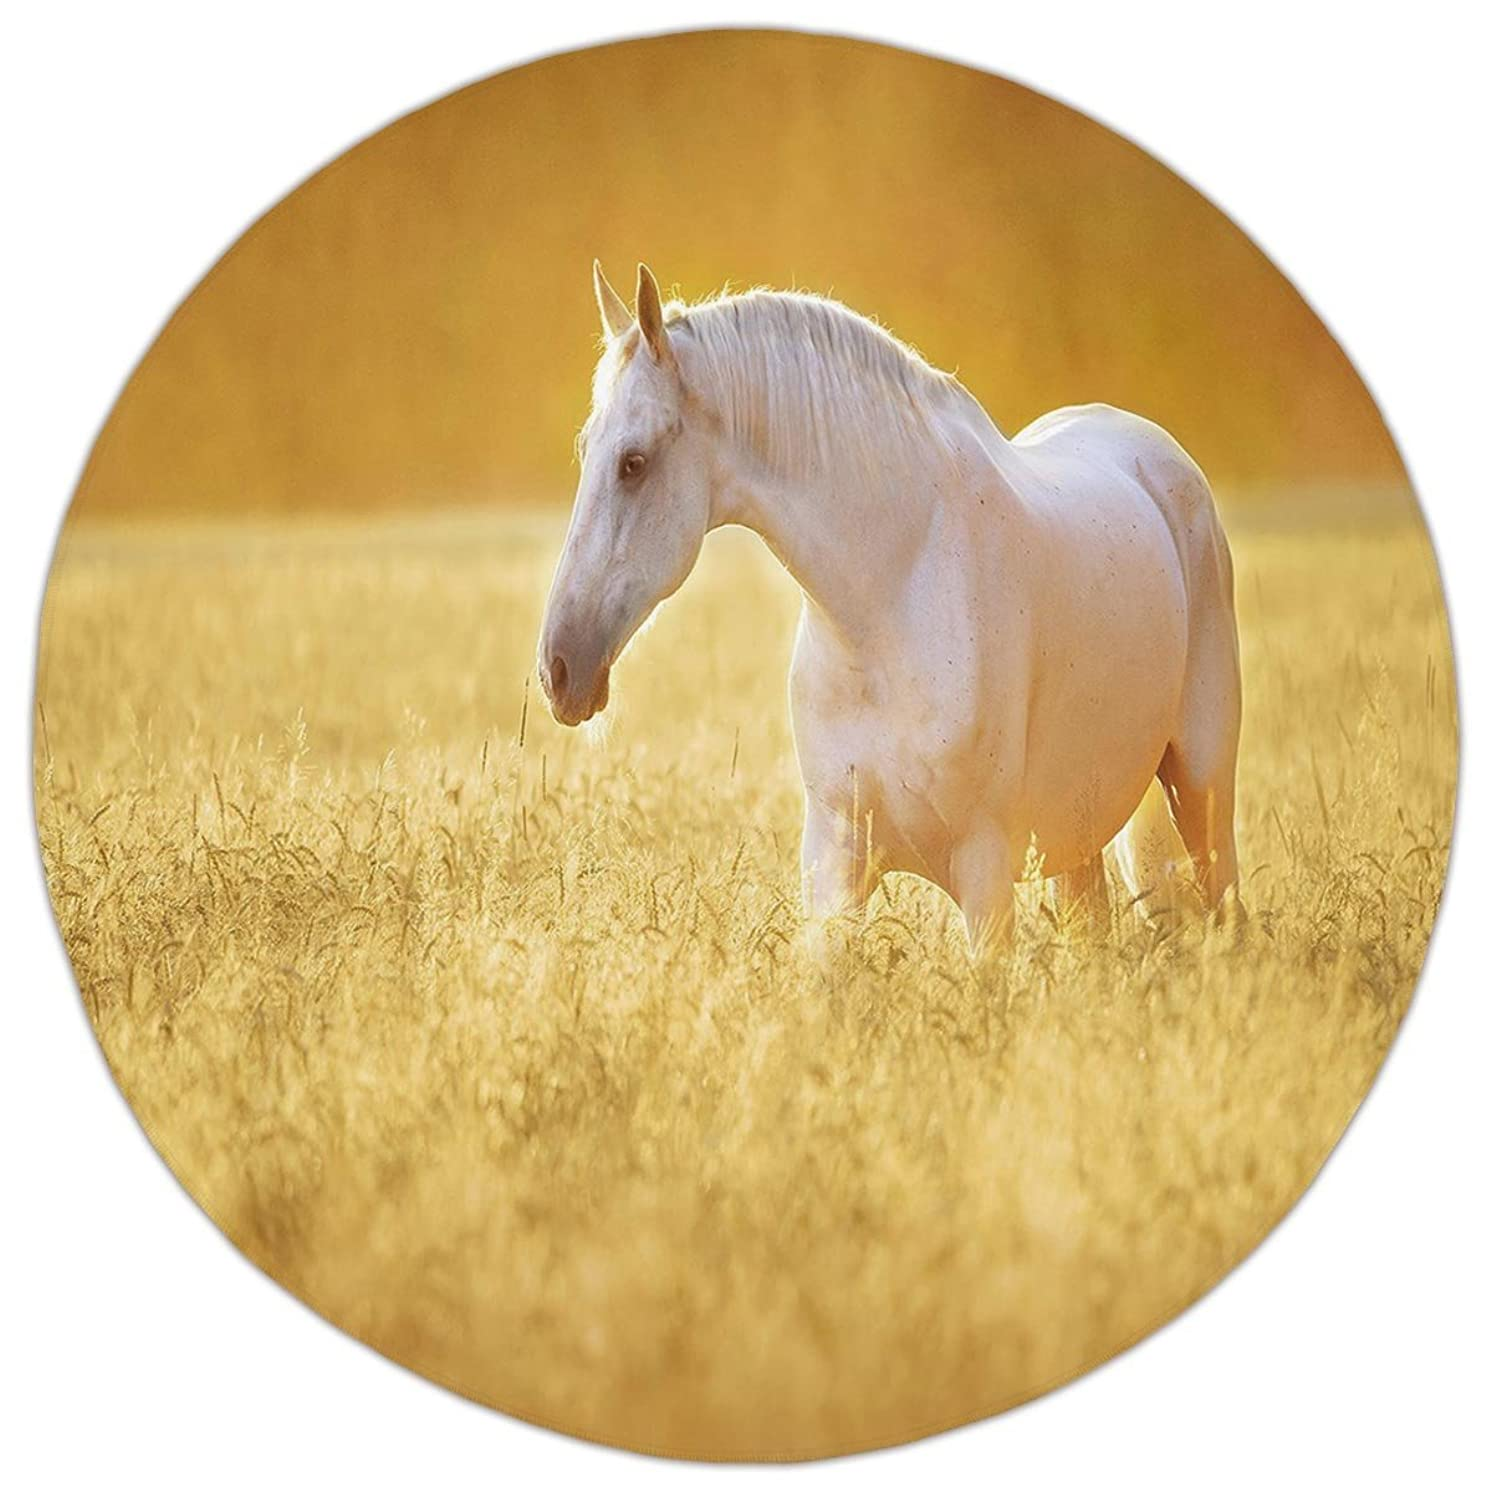 Round Area Rug Mat Rug,Horse Decor,White Orlov Trotter Horse in Rye Field Rustic Environment Autumn Sunset Farm,Yellow White,Home Decor Mat with Non Slip Backing